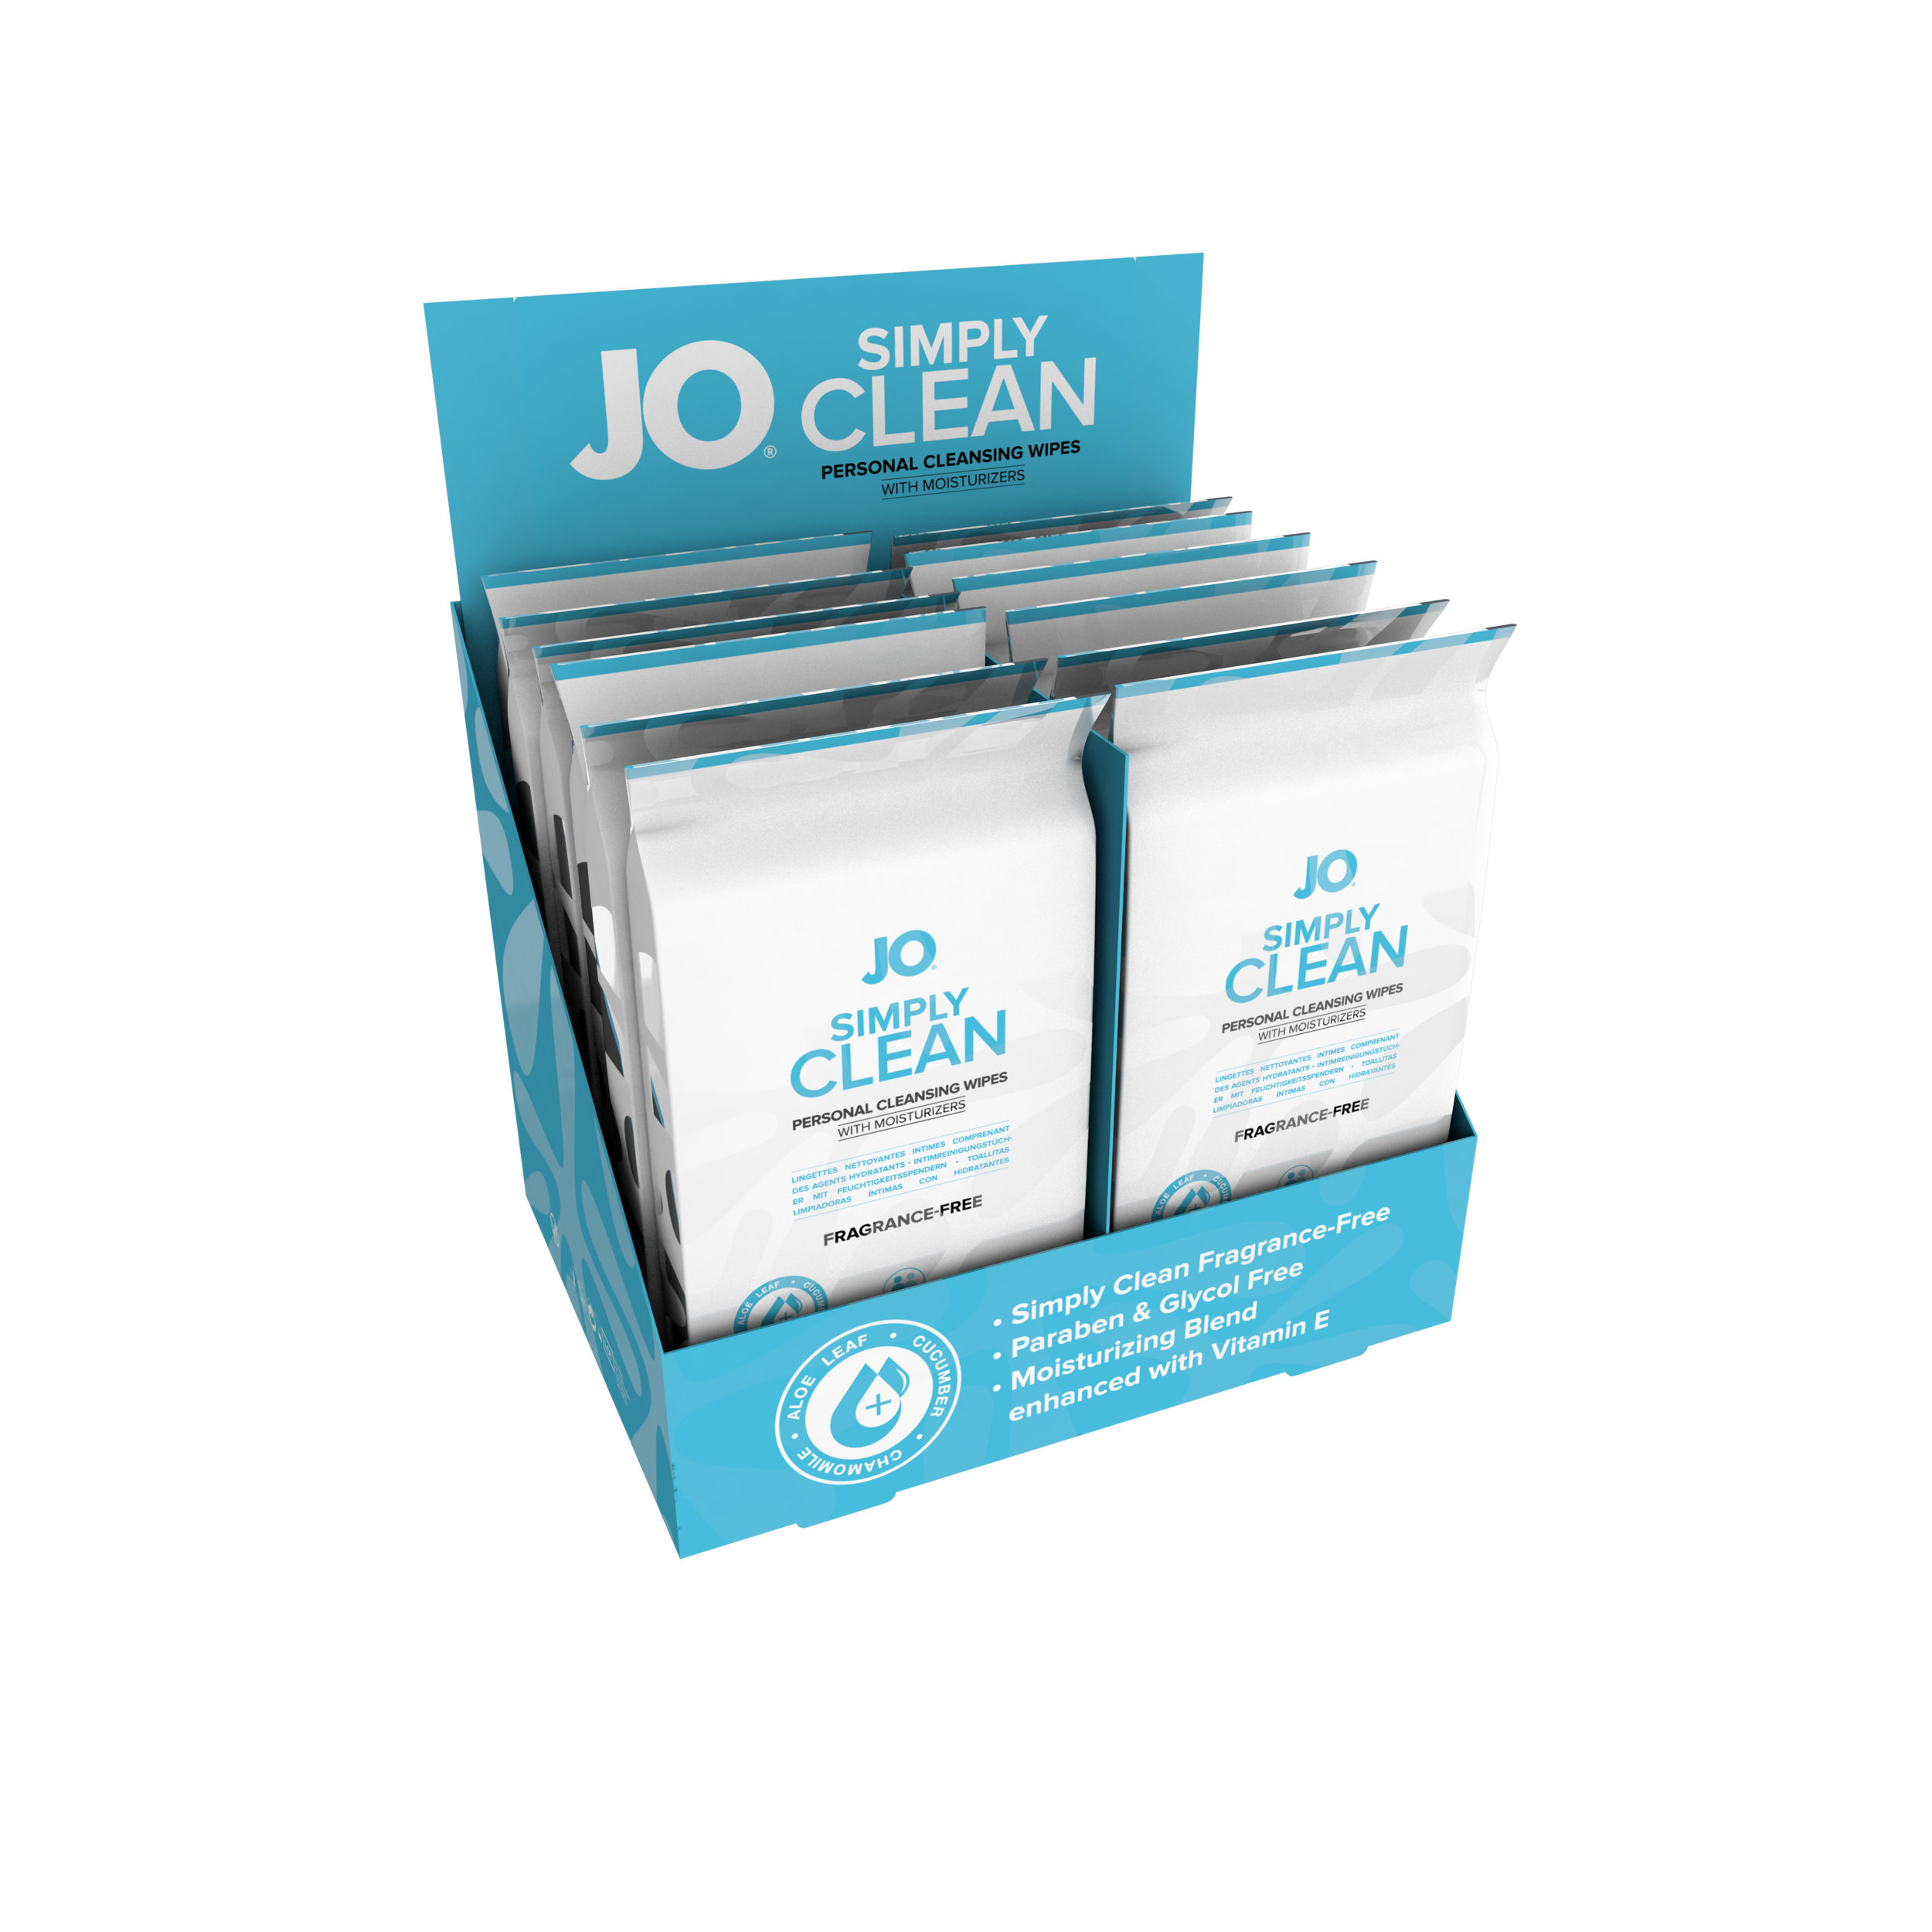 10222 - JO PERSONAL CLEANSING WIPES - SIMPLY CLEAN - 12 pack  (MOQ 12 units - Includes Counter Display) .png